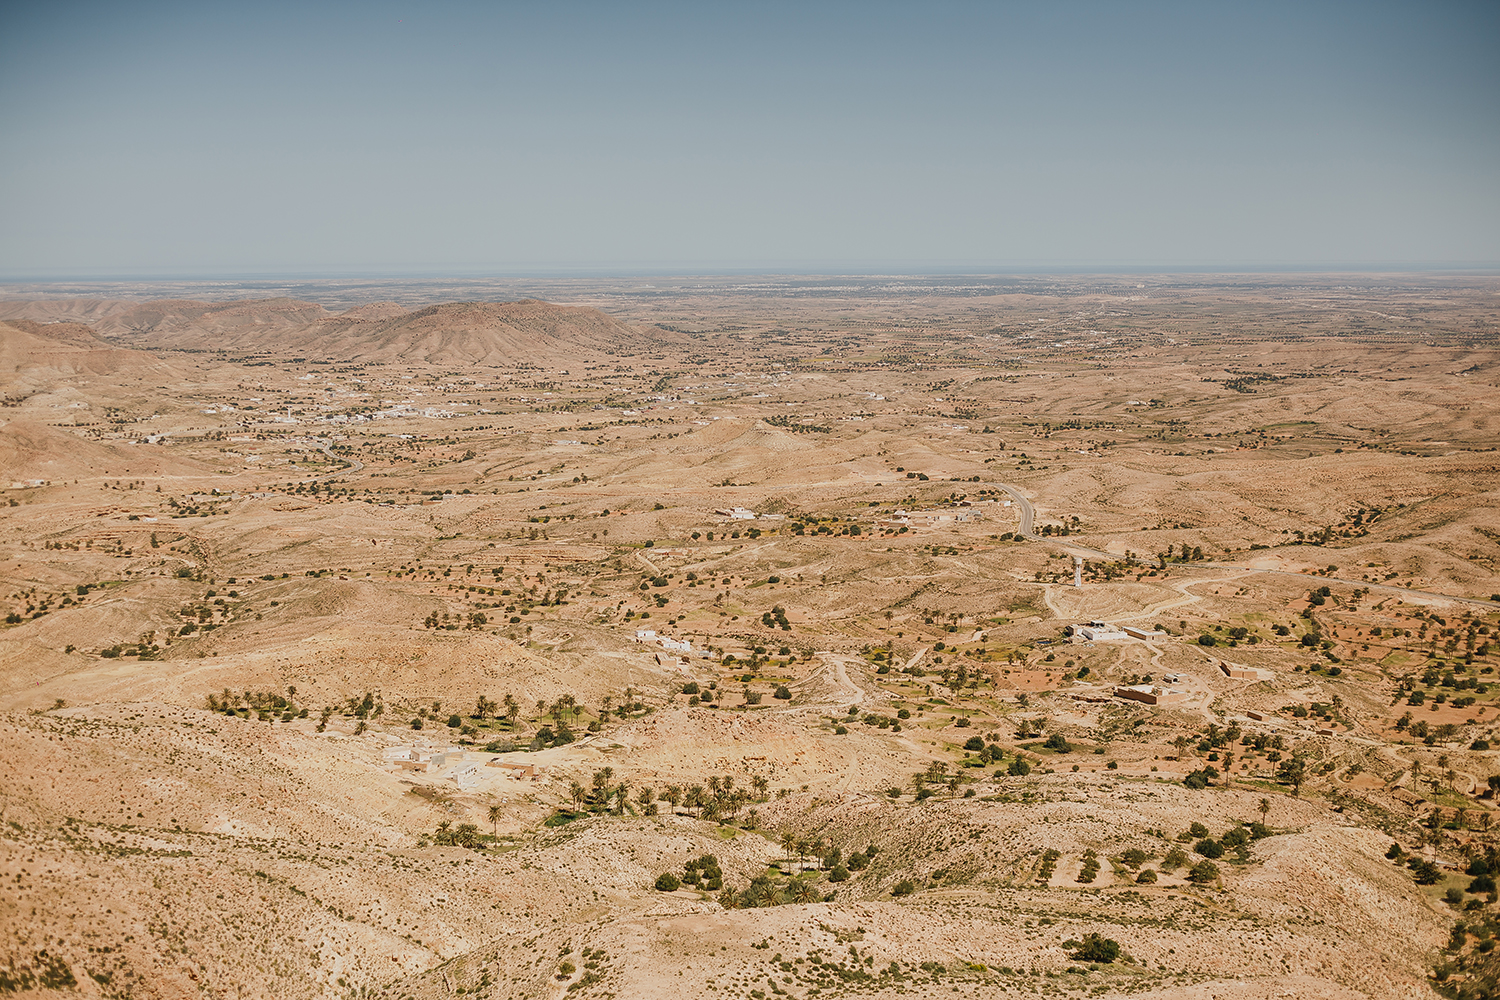 SN2_1614-sophie-narses-photographe-Tunisie-Voyage-book-shooting-geneve-mariage-suisse-famille-animaux-tirages-art-cours-photo-paysages-desert